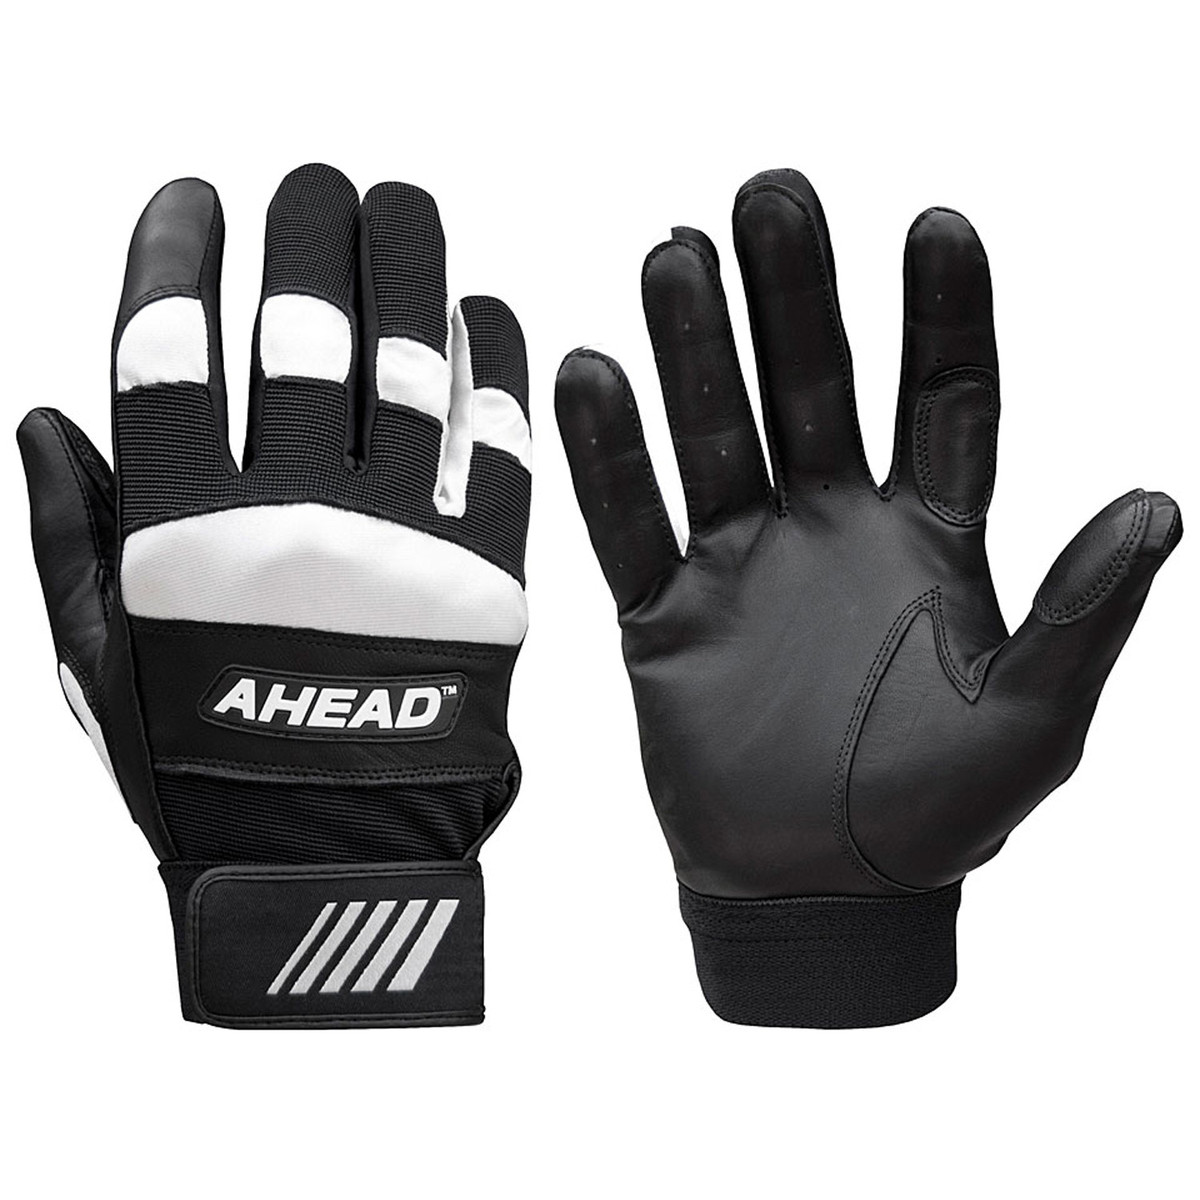 Image of Ahead Drummers Gloves Large